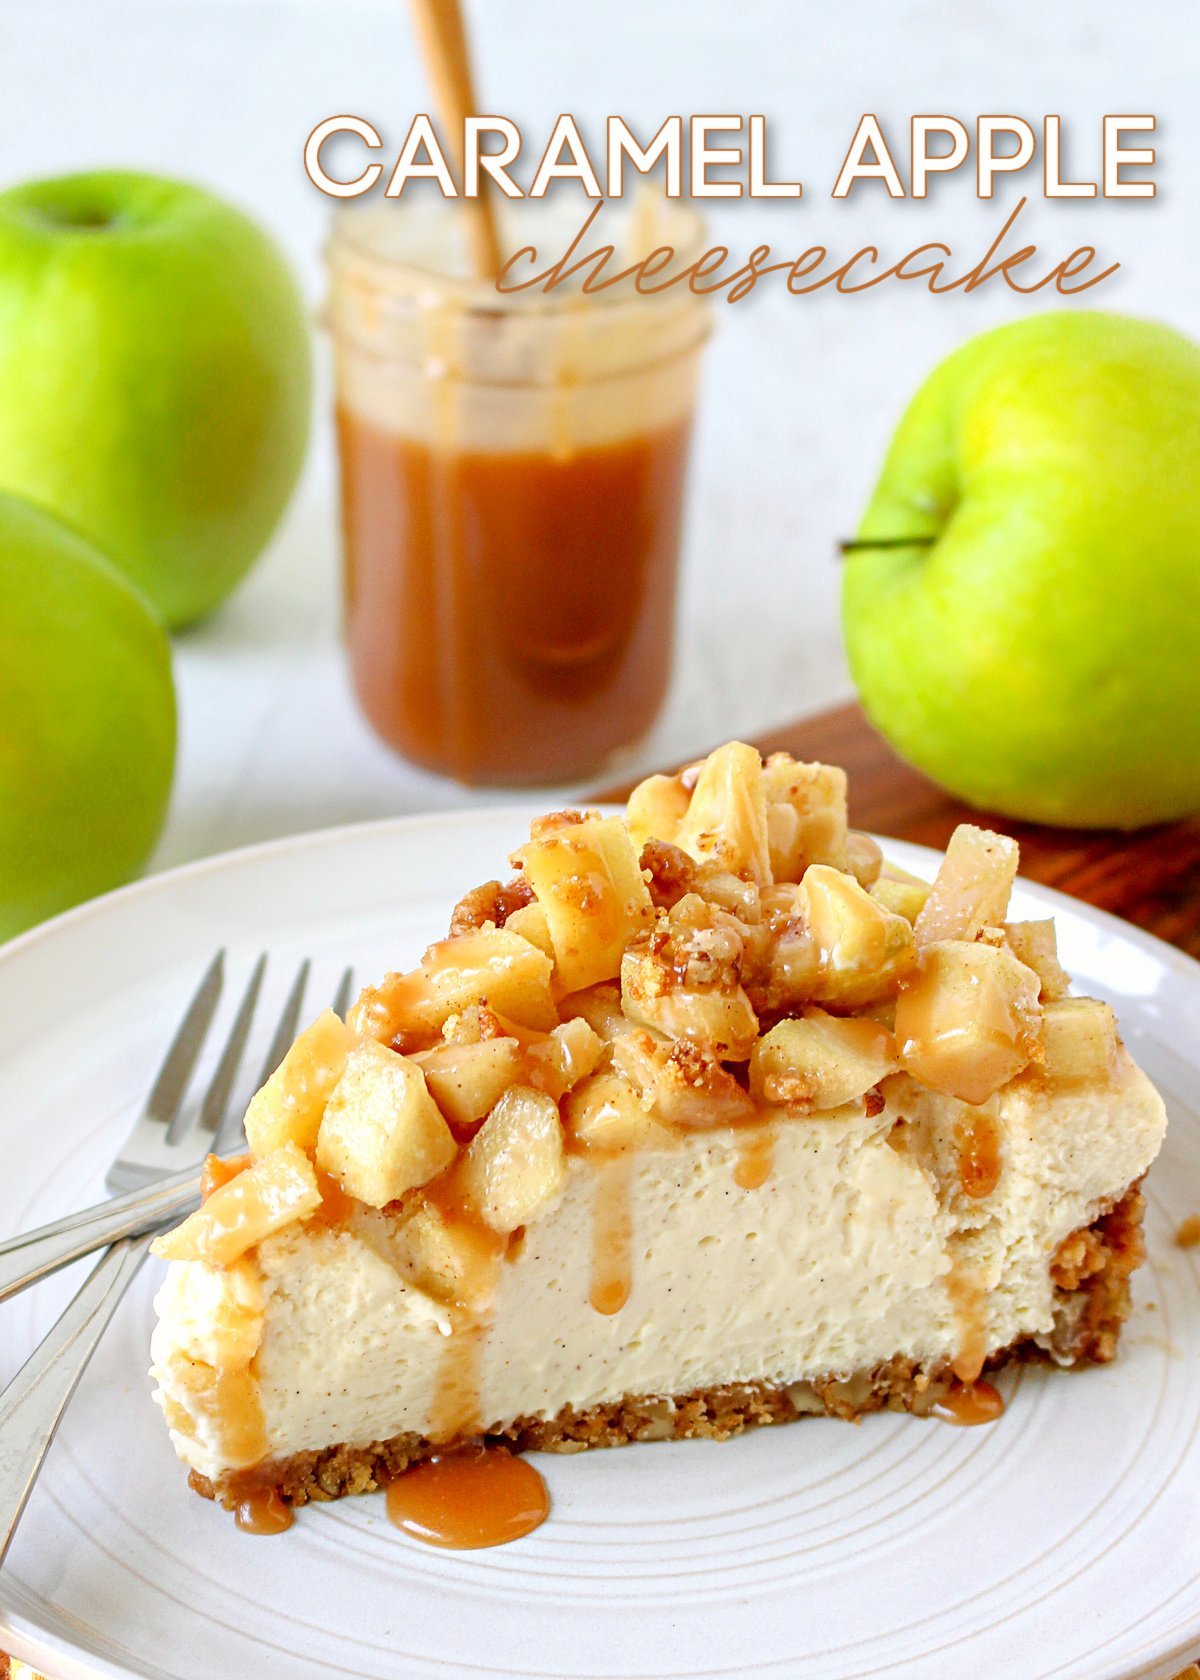 caramel apple cheesecake slice on white plate with green apples and caramel sauce in background title overlay at top